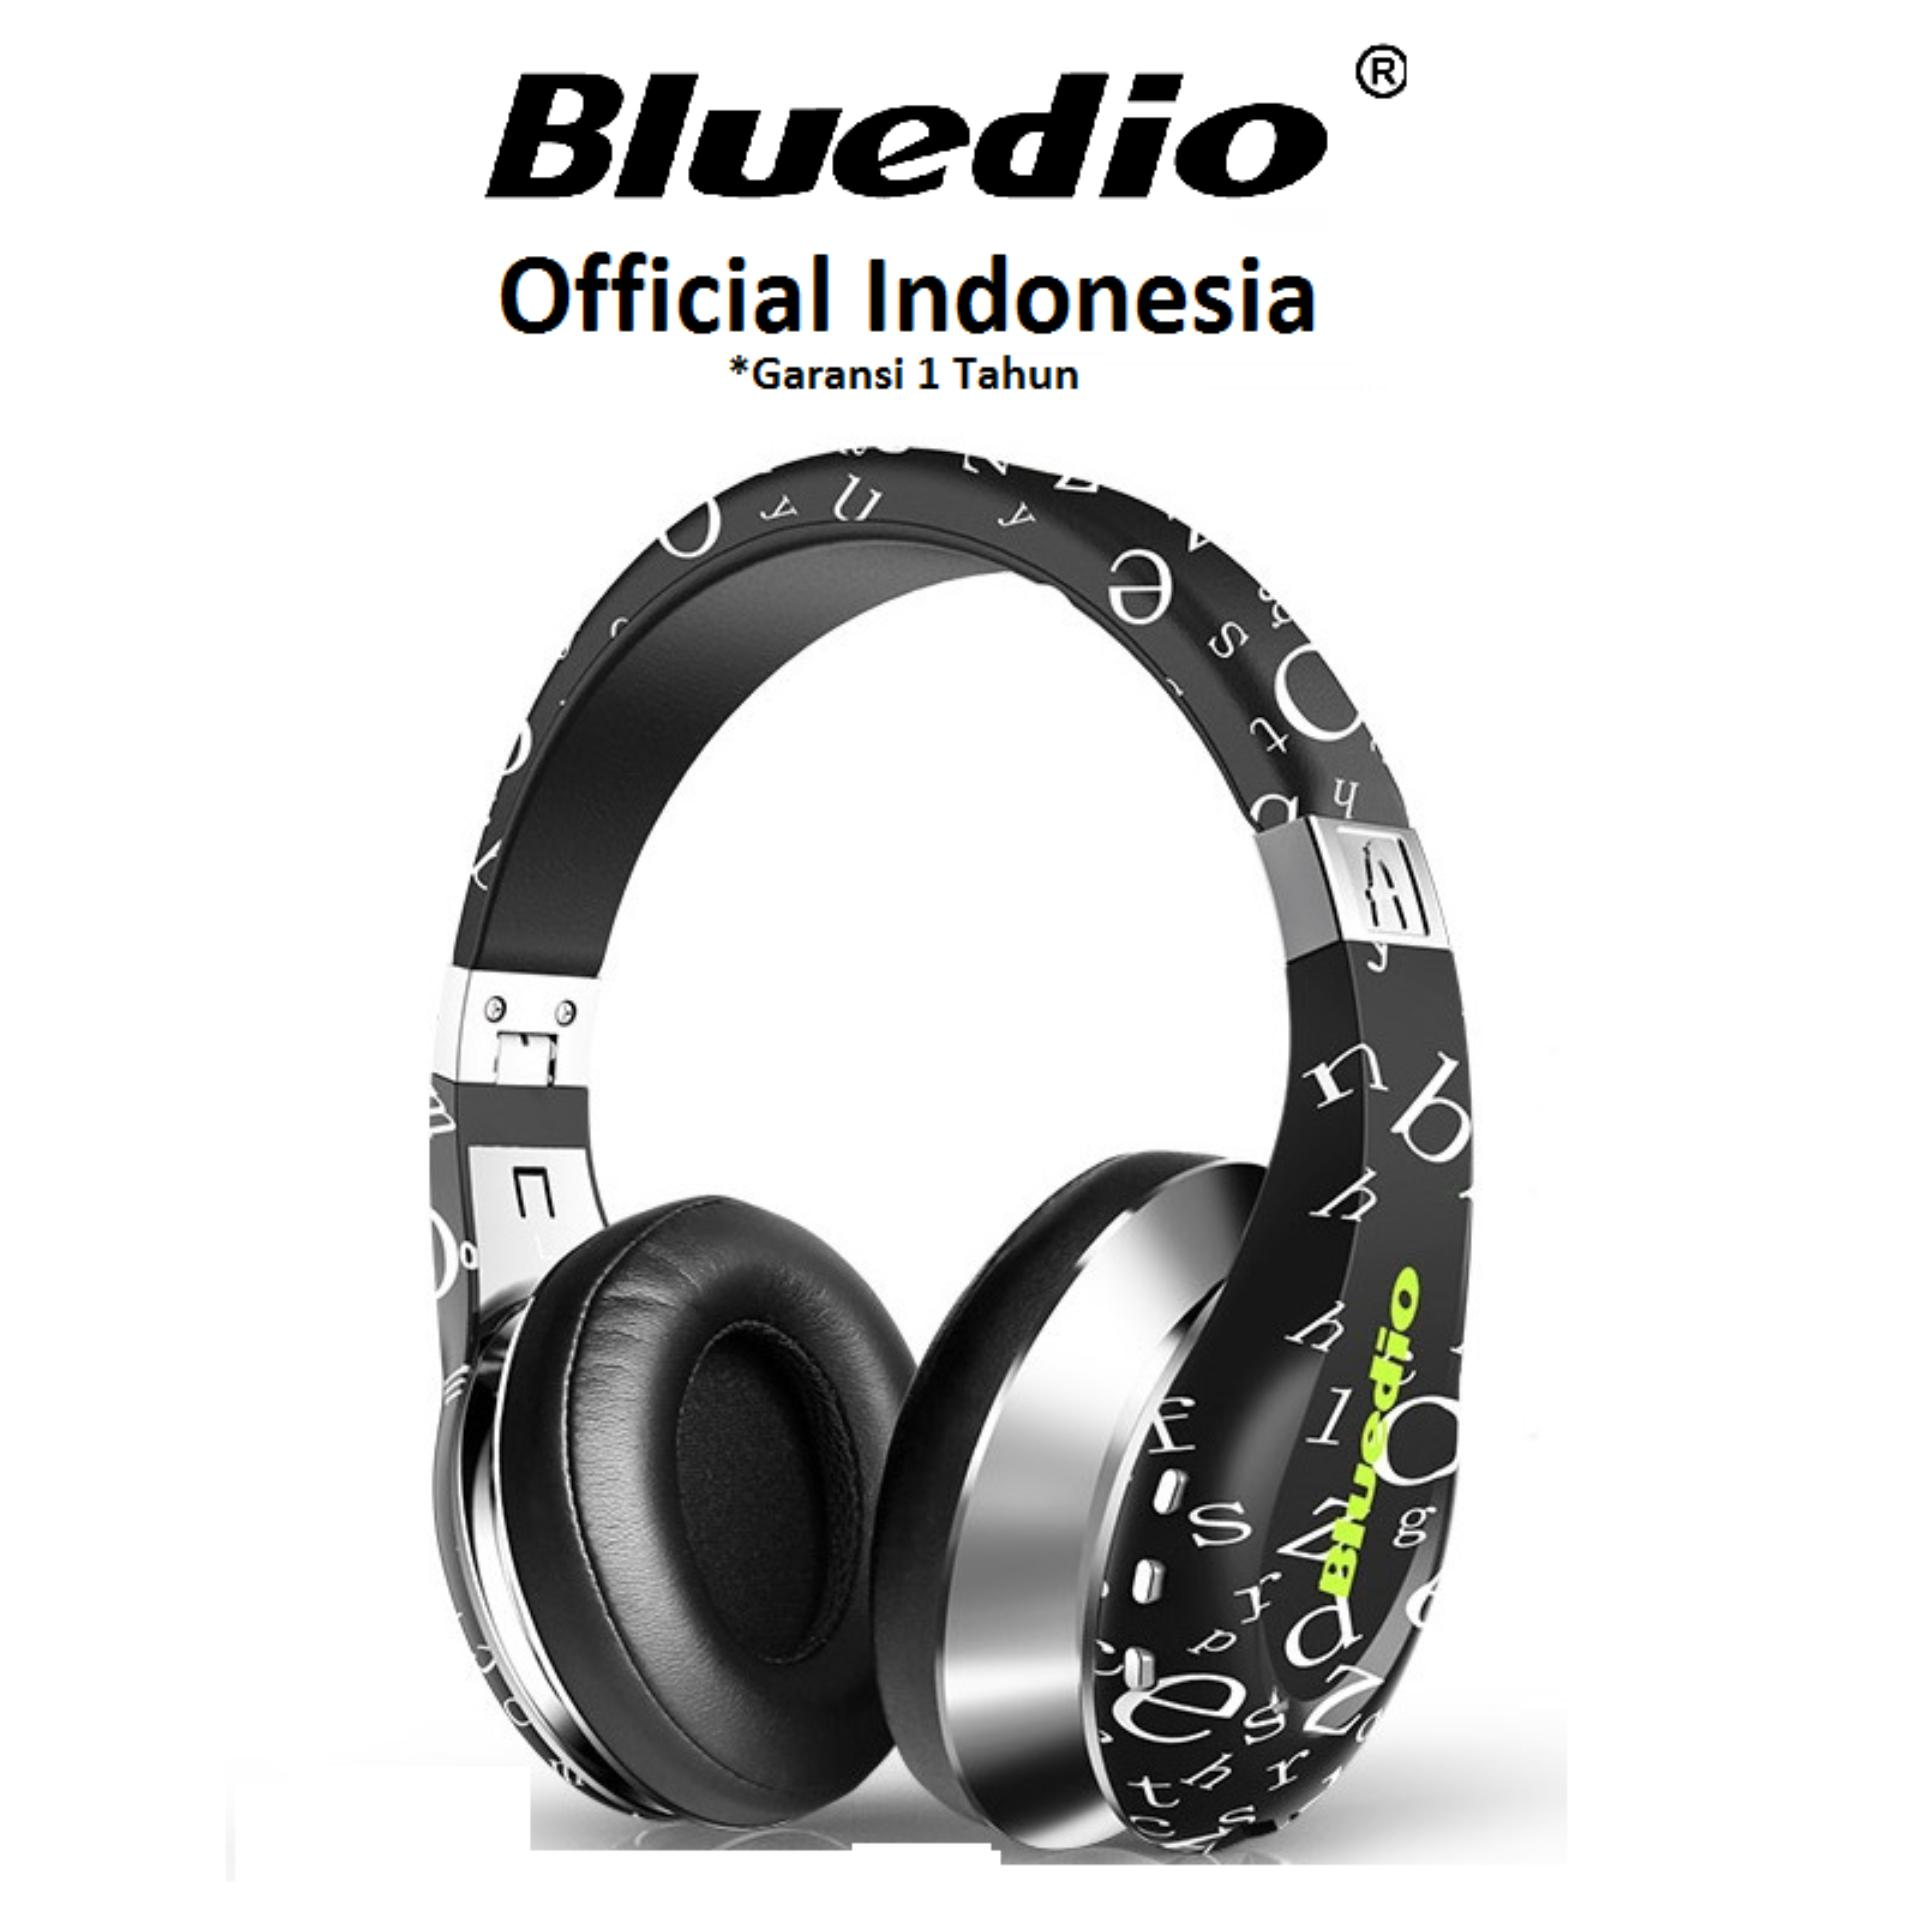 Diskon Bluedio Air A Stylish Wireless Bluetooth Headphones With Mic Hitam Bluedio Di Dki Jakarta